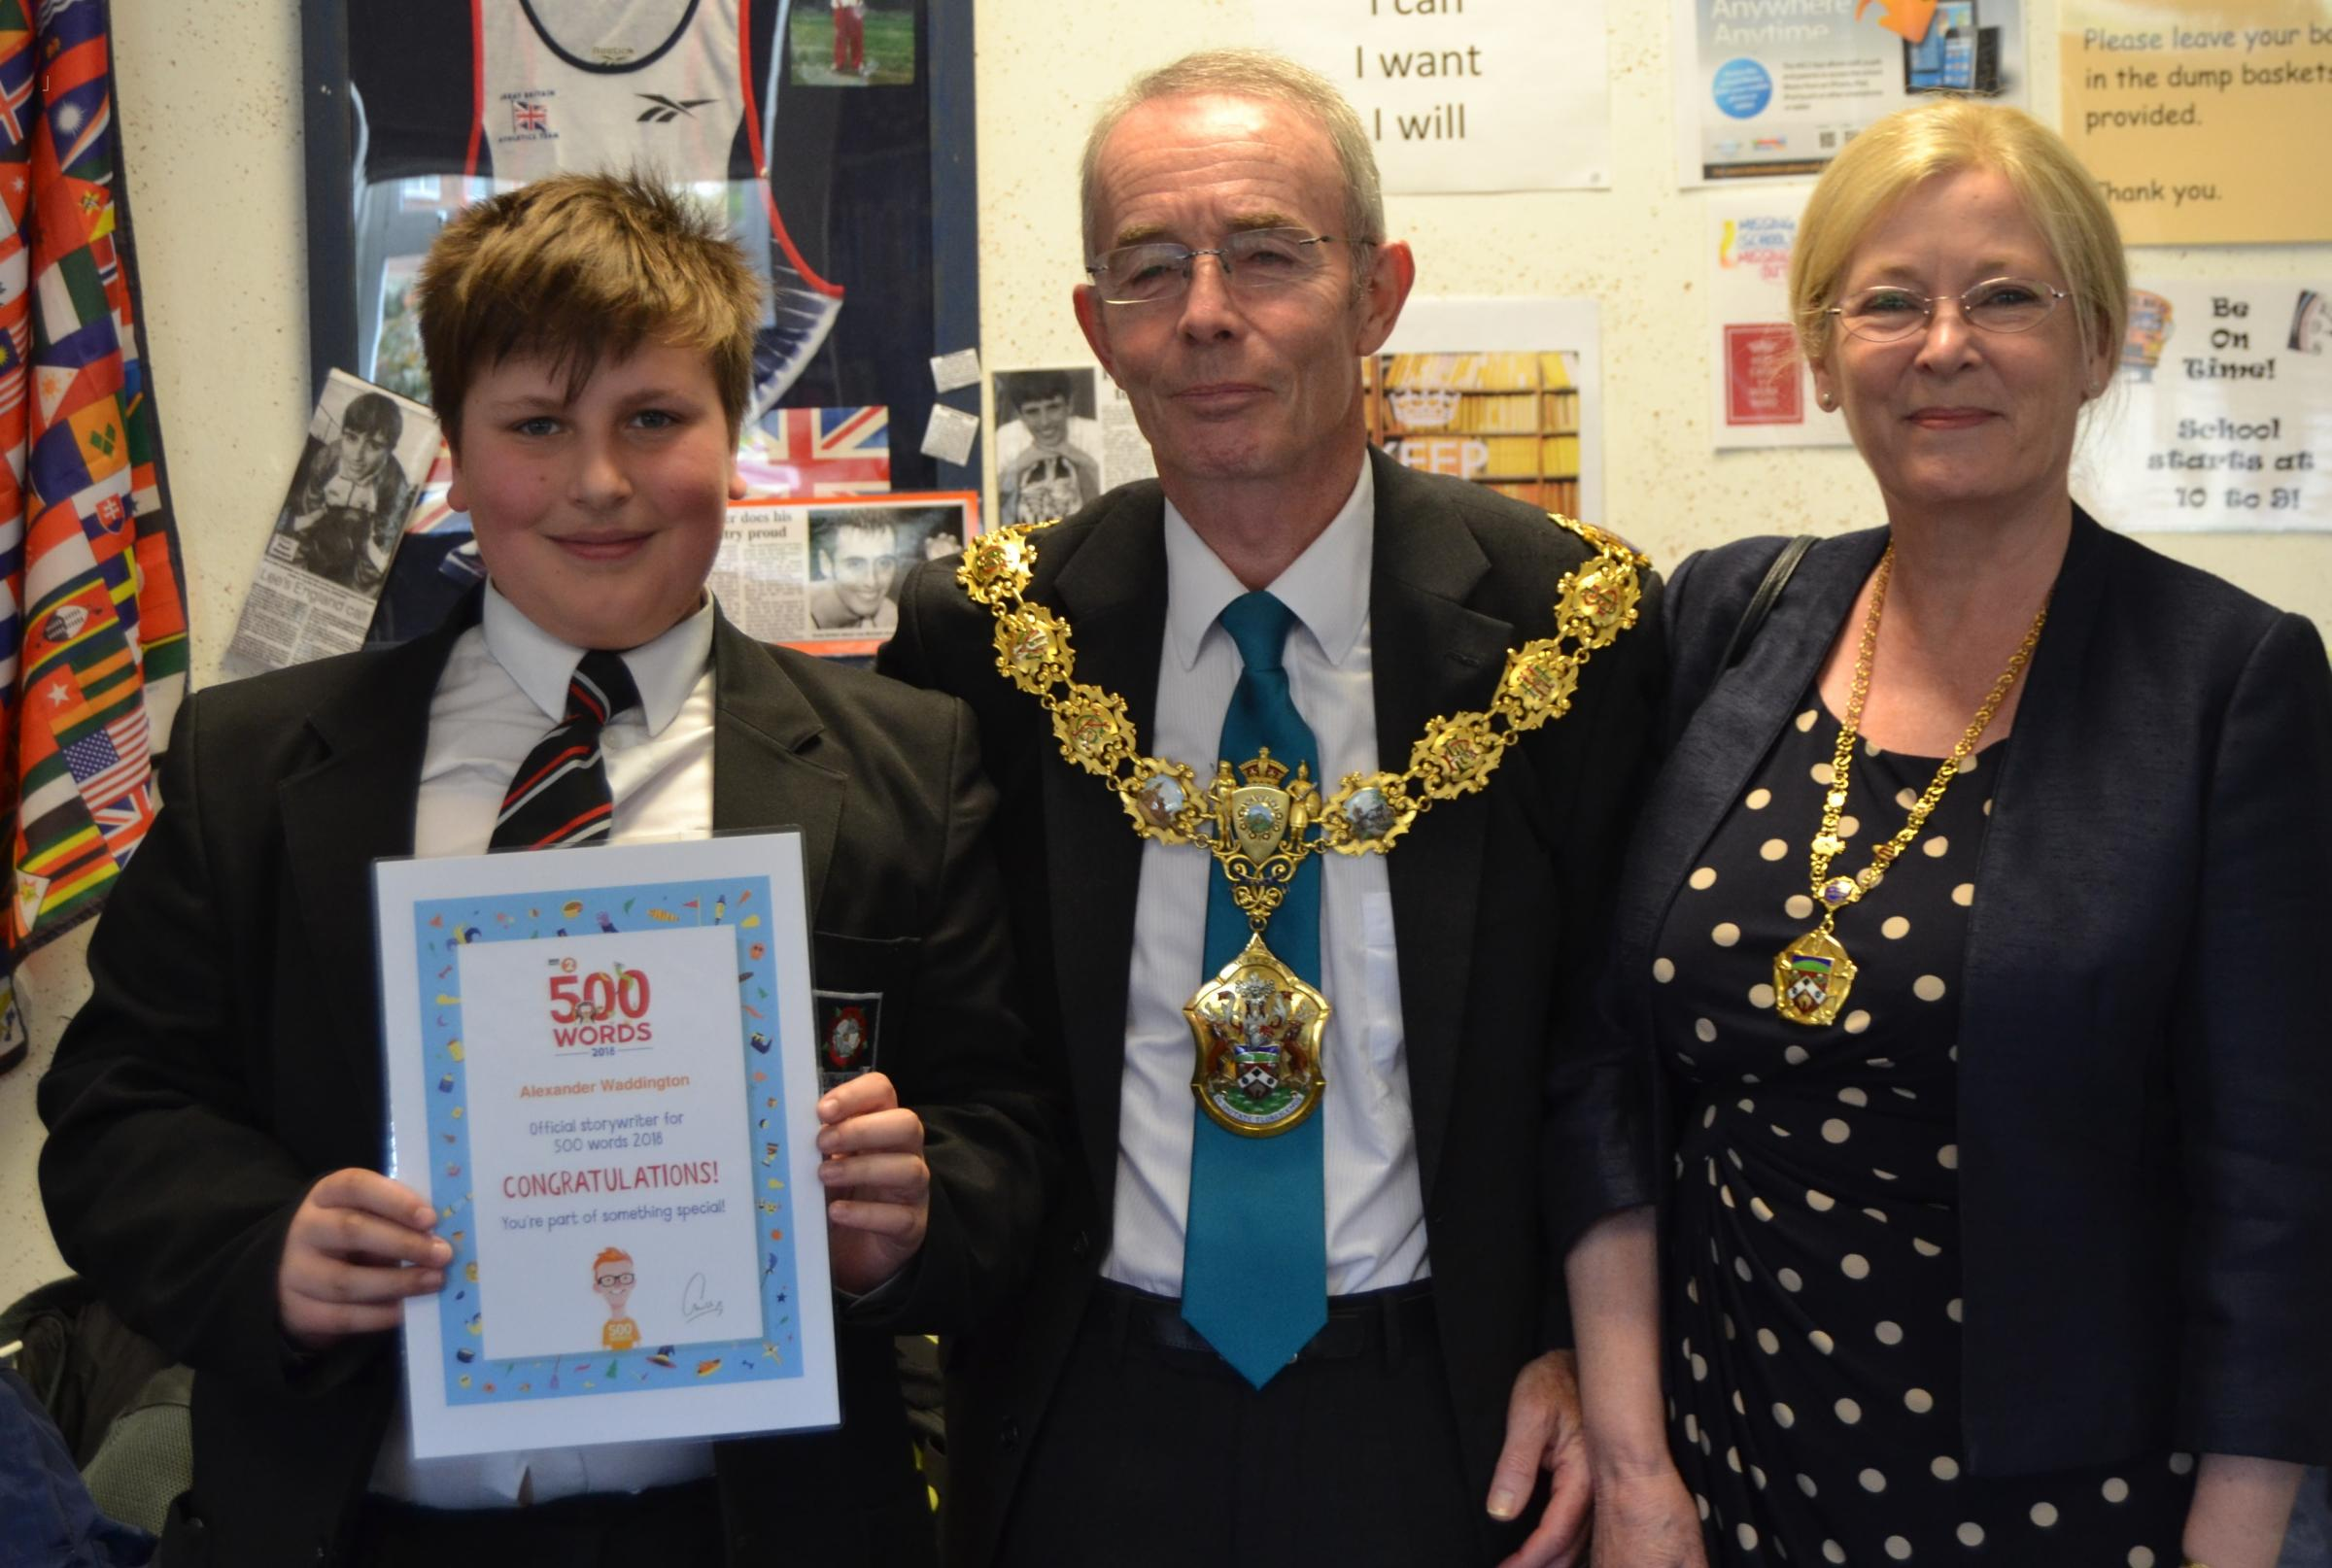 West Craven High School student Alexander Waddington has made it to finals day of the BBC Radio 2 500 Words competition, He is pictured with former Pendle mayor, Councillor David Whalley, the former mayoress, Barbara Whalley